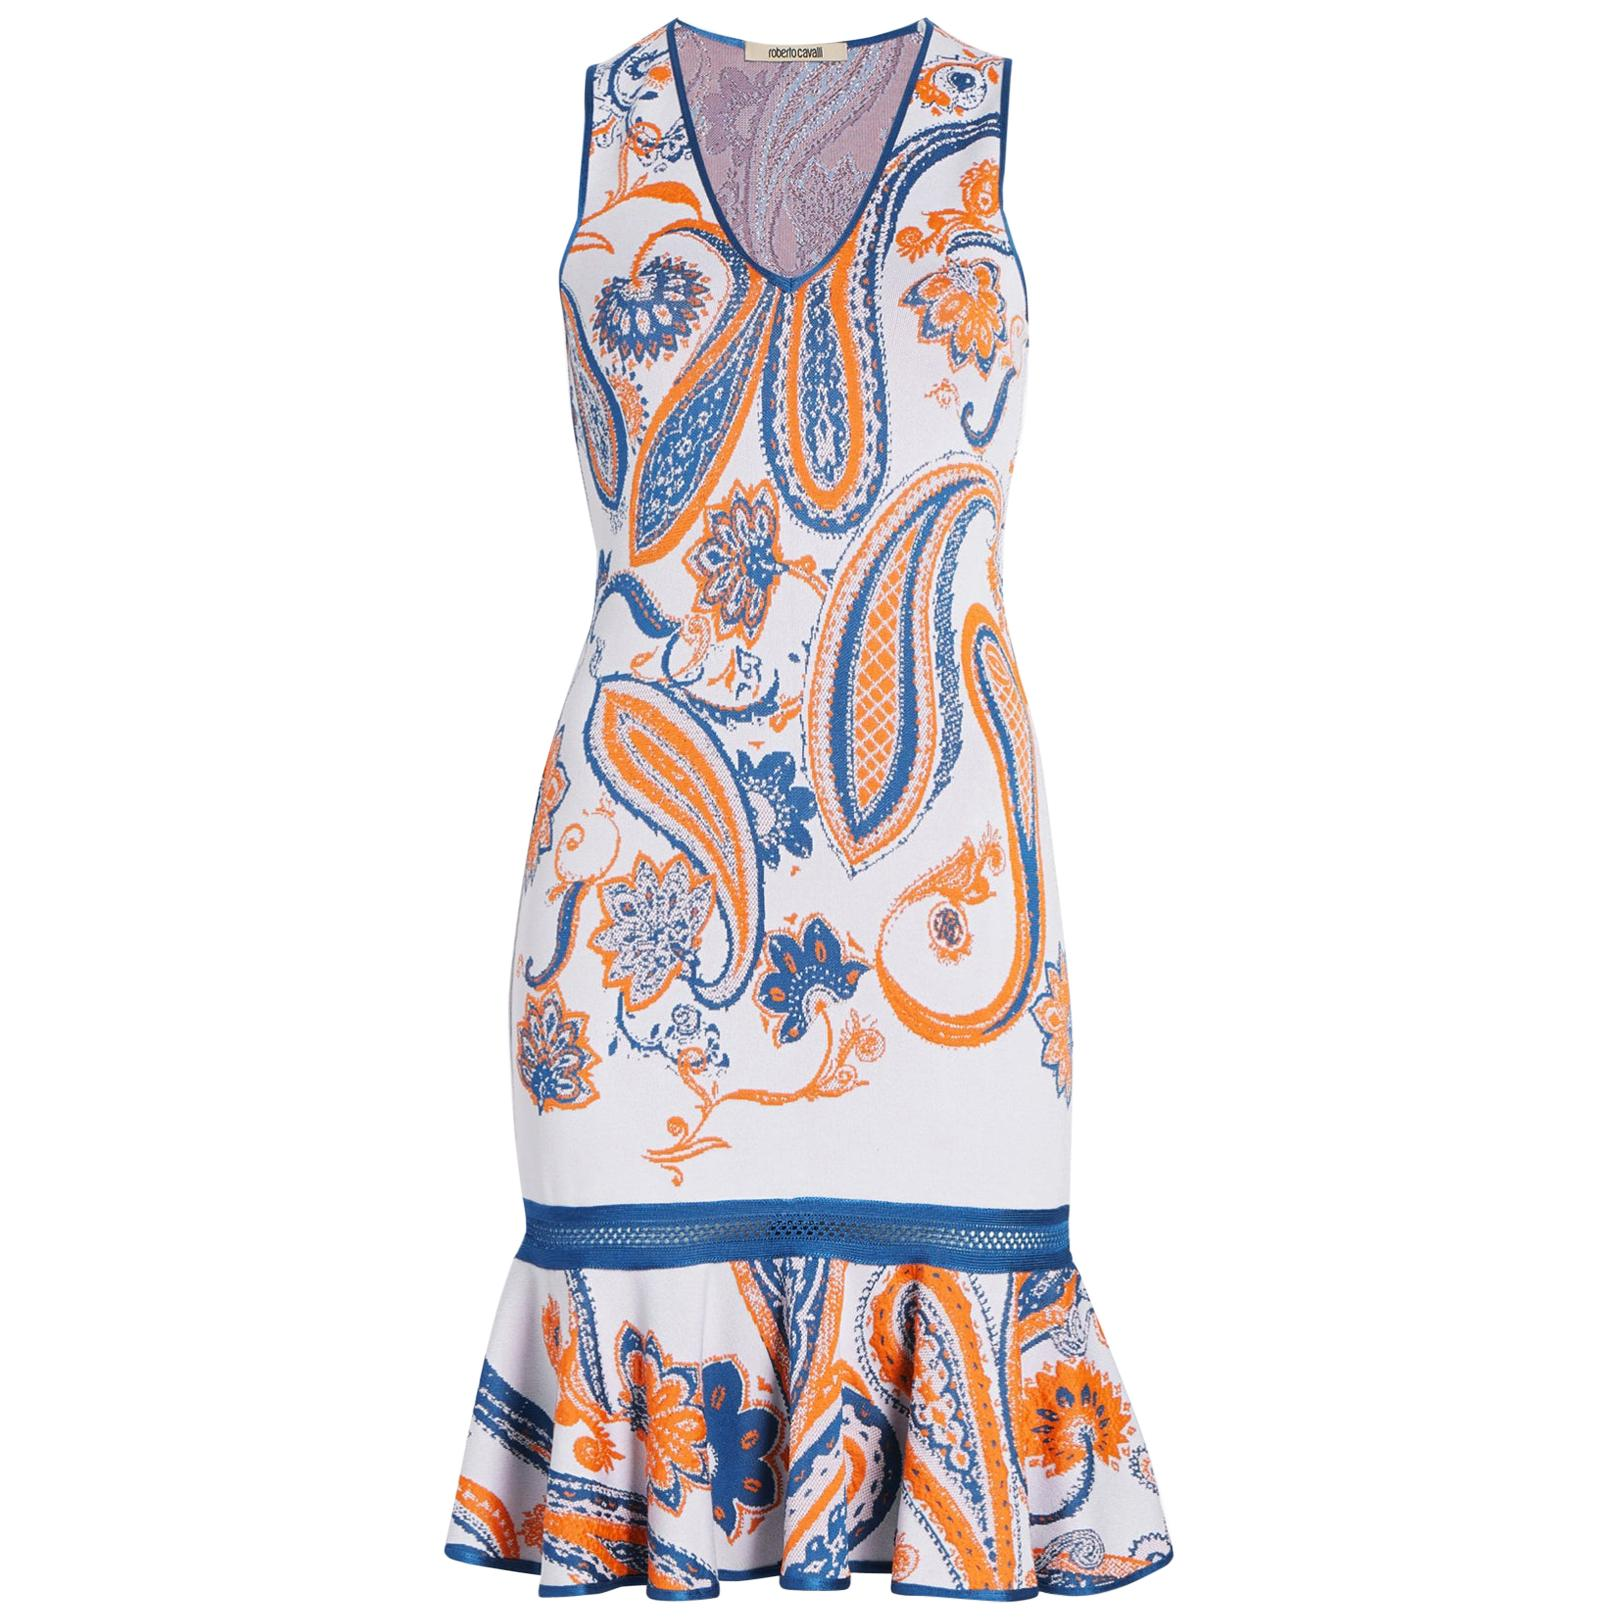 Roberto Cavalli Paisley Jacquard Knit Sleeveless Fitted Cocktail Dress Size 42